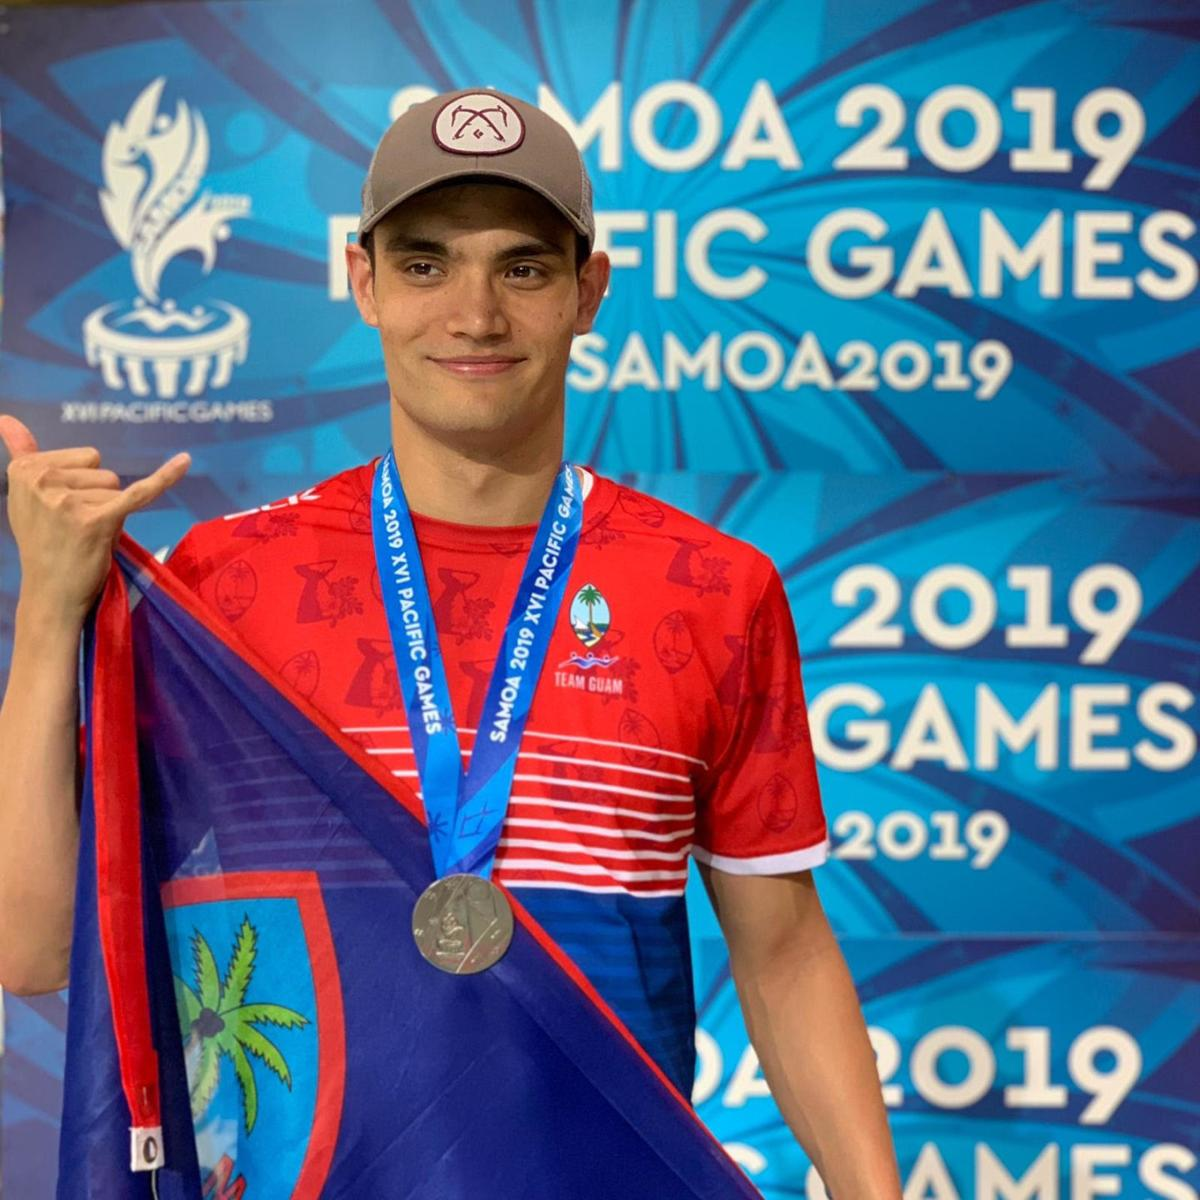 Pacific Games wrap up -8